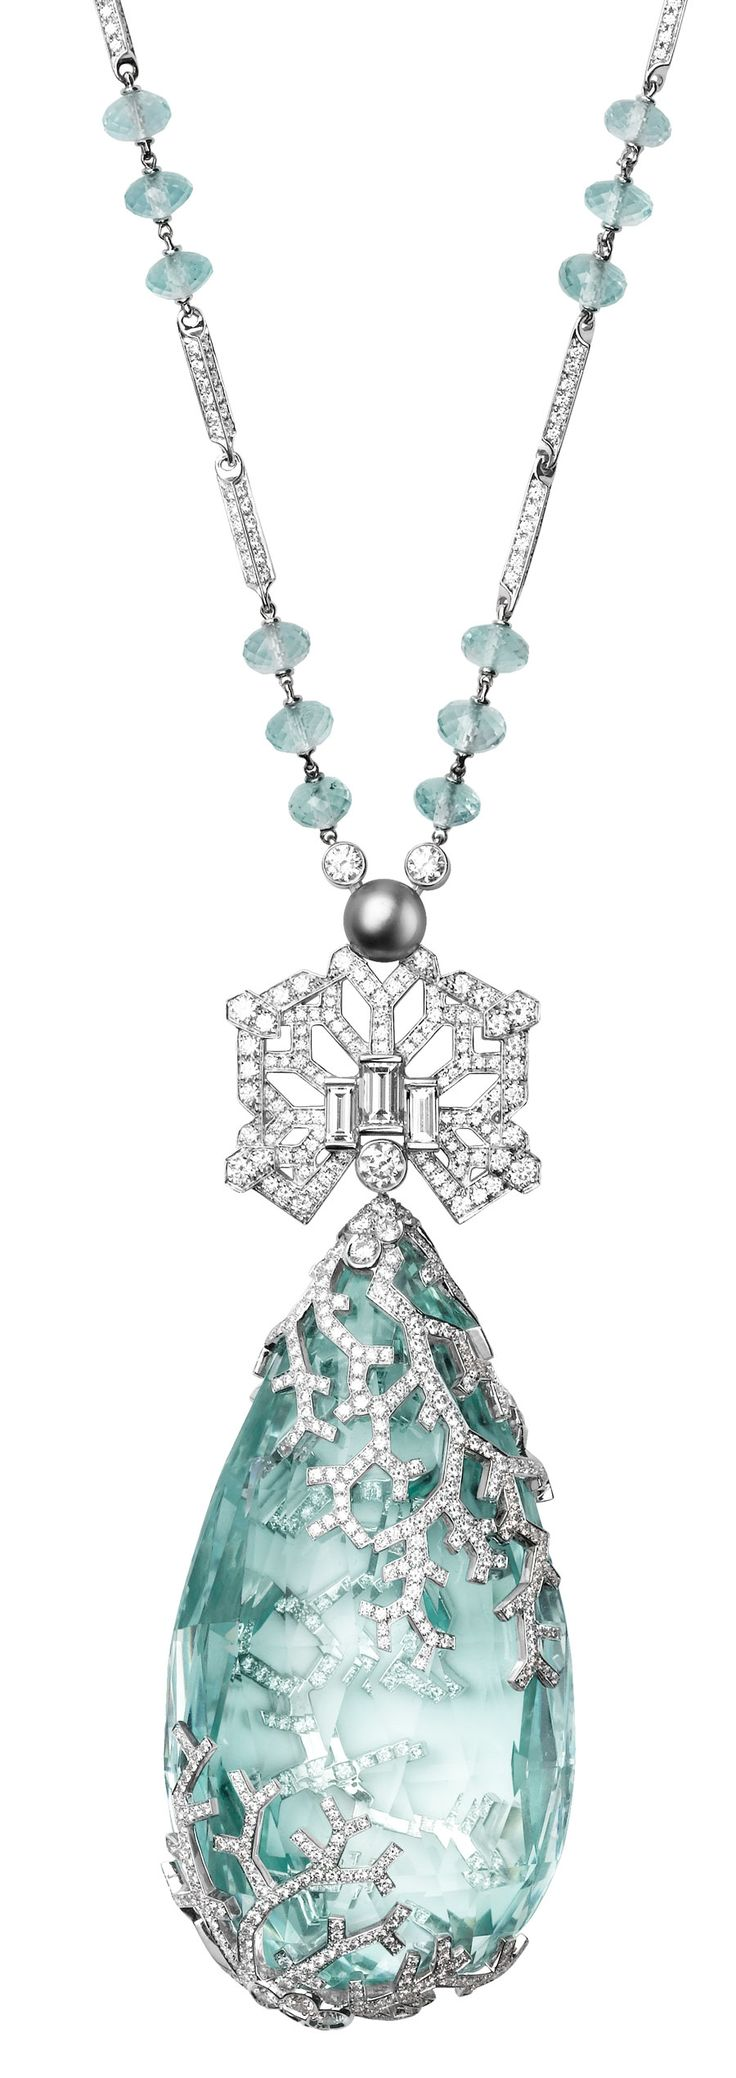 Cartier Biennale Necklace - Platinum, one 236.27-carat aquamarine, one natural pearl, facetted aquamarine beads, baguette-cut diamonds, brilliants. PHOTO - Vincent Wulveryck © Cartier 2012